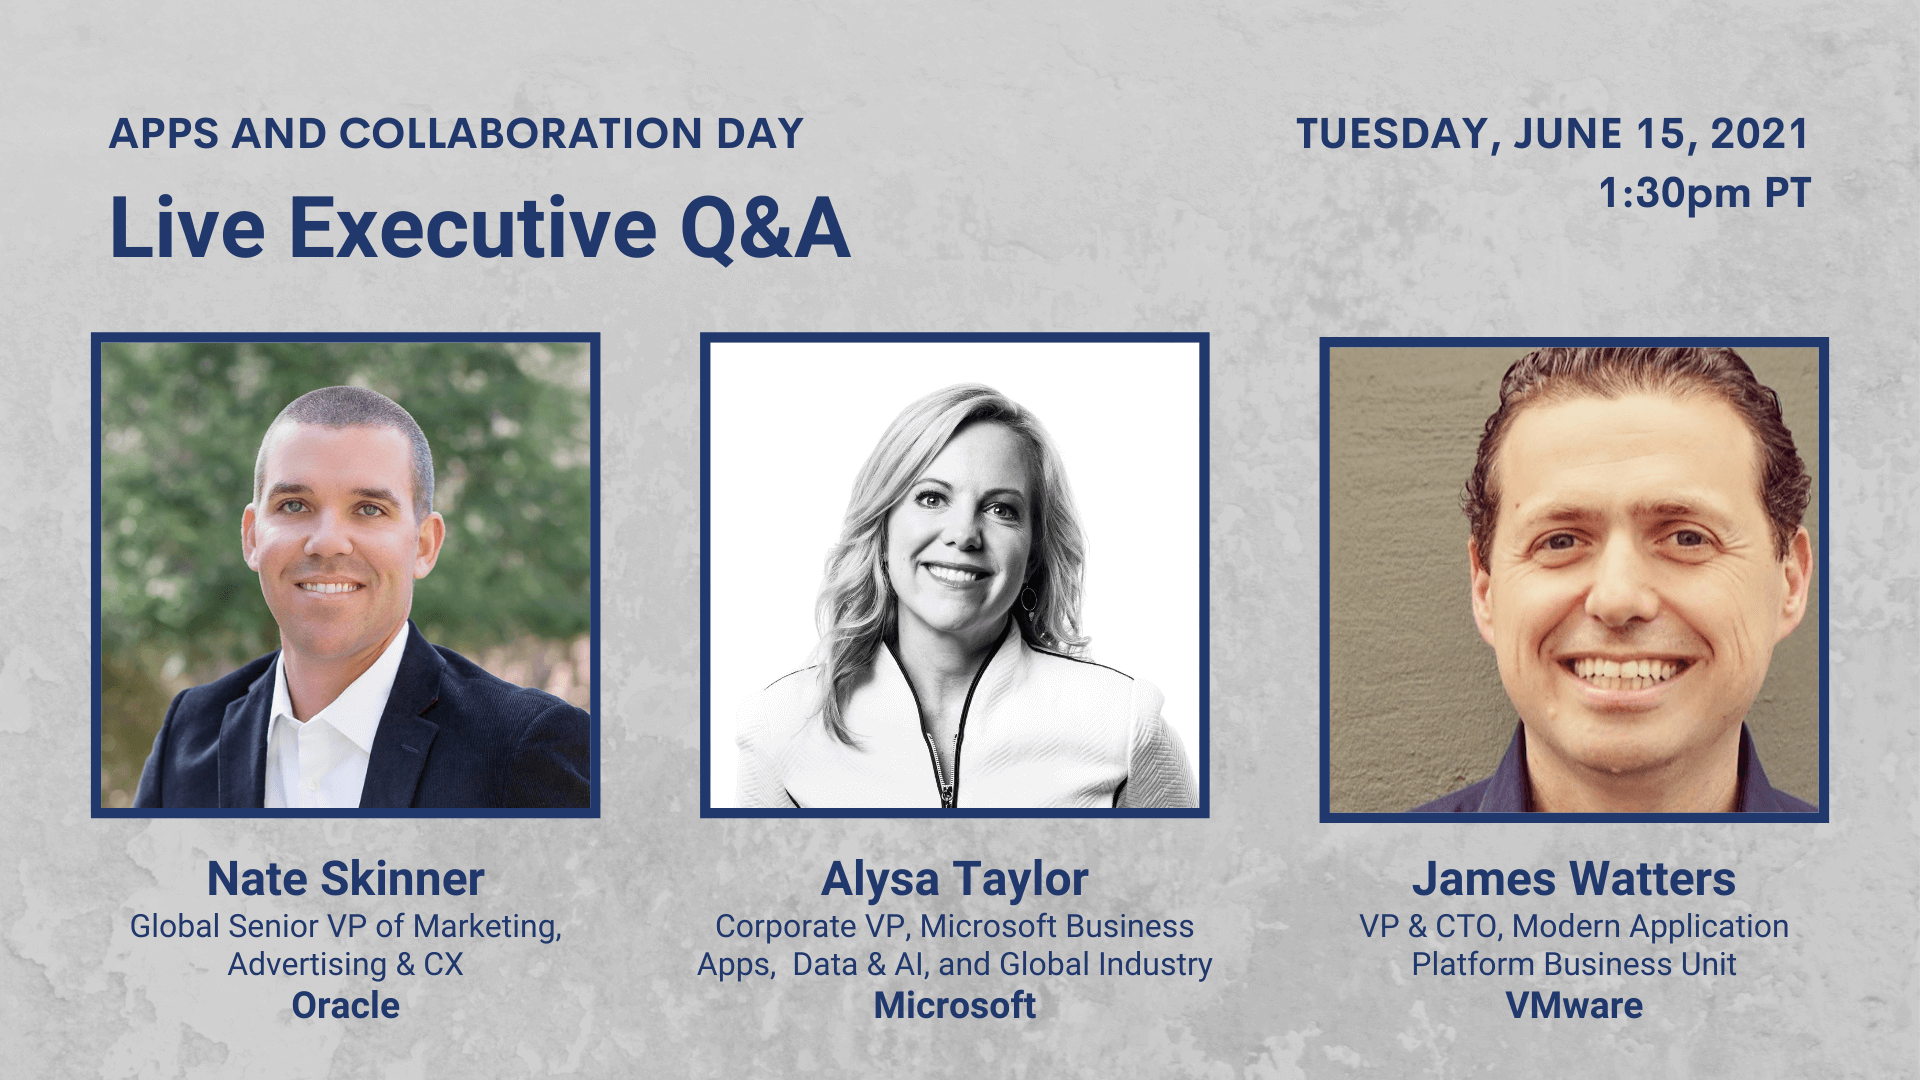 Day 2 Live Executive Q&A — Nate Skinner, Alysa Taylor, James Watters